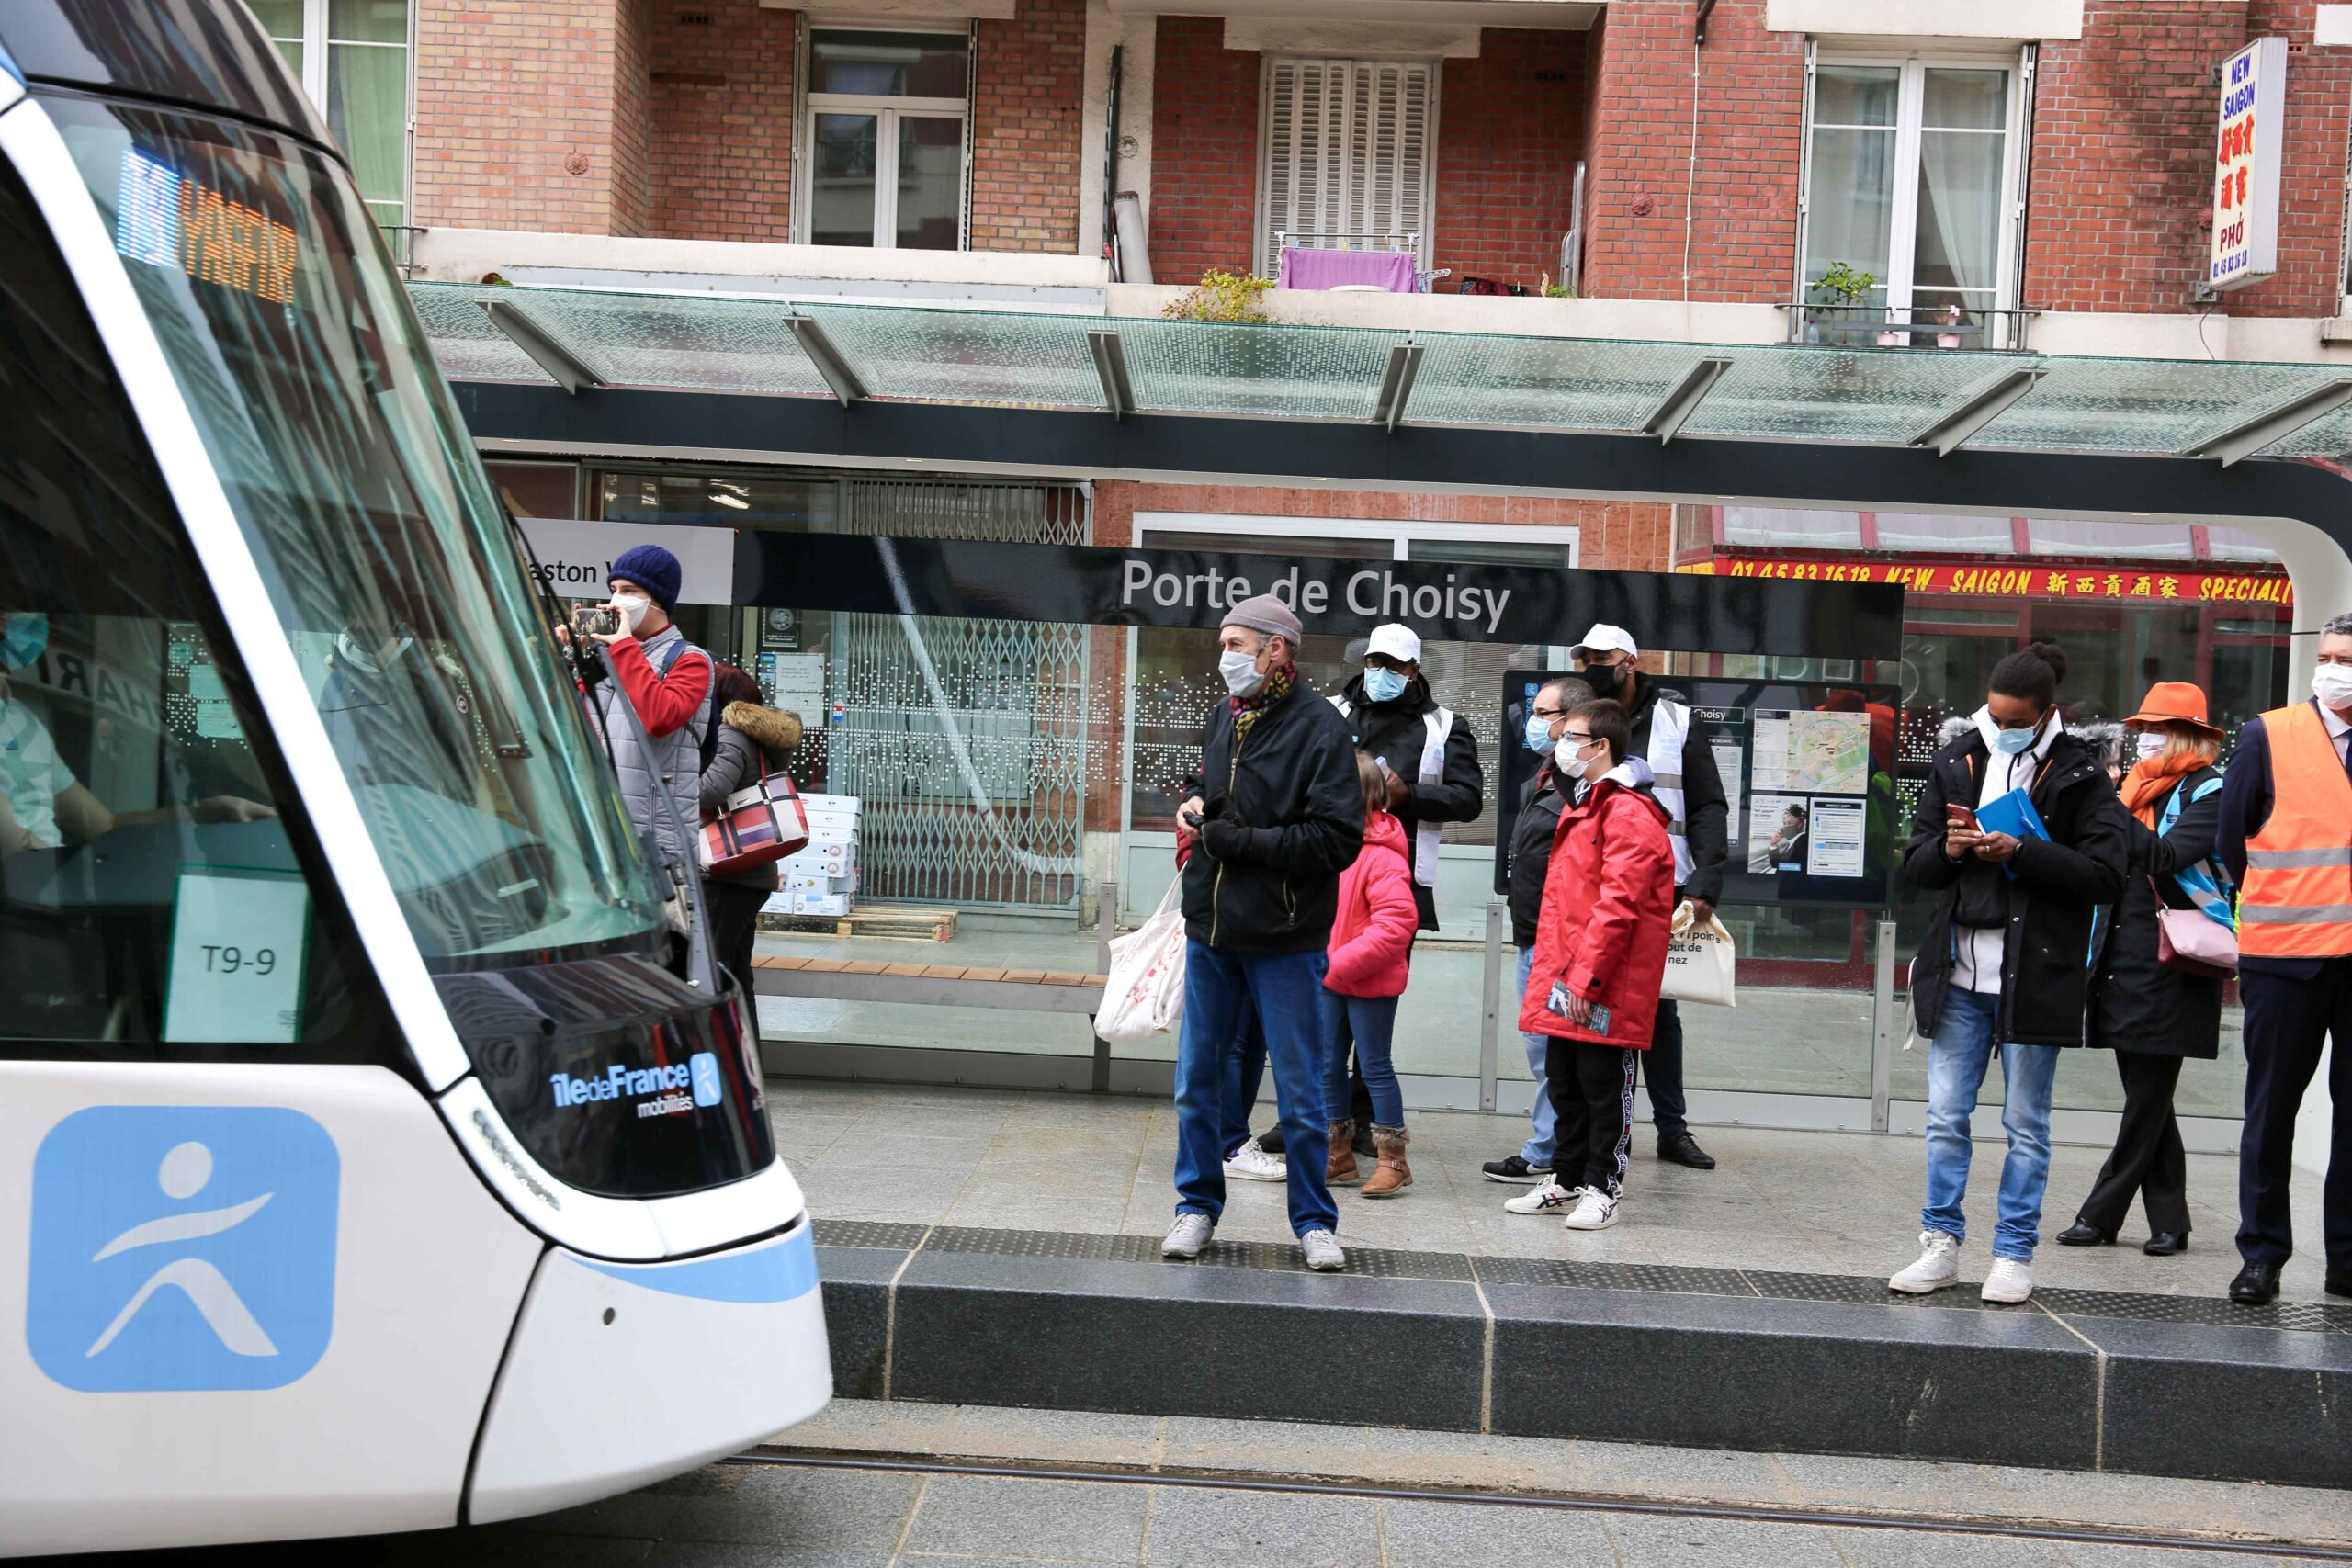 The population of Paris and its suburbs attends to the opening day of the new tramway T9 tram line between Porte de Choisy and Orly City, southeastern Paris, on April 10, 2021 at Porte de Choisy, in Paris.Line T9 connects Porte de Choisy Paris Métro sta